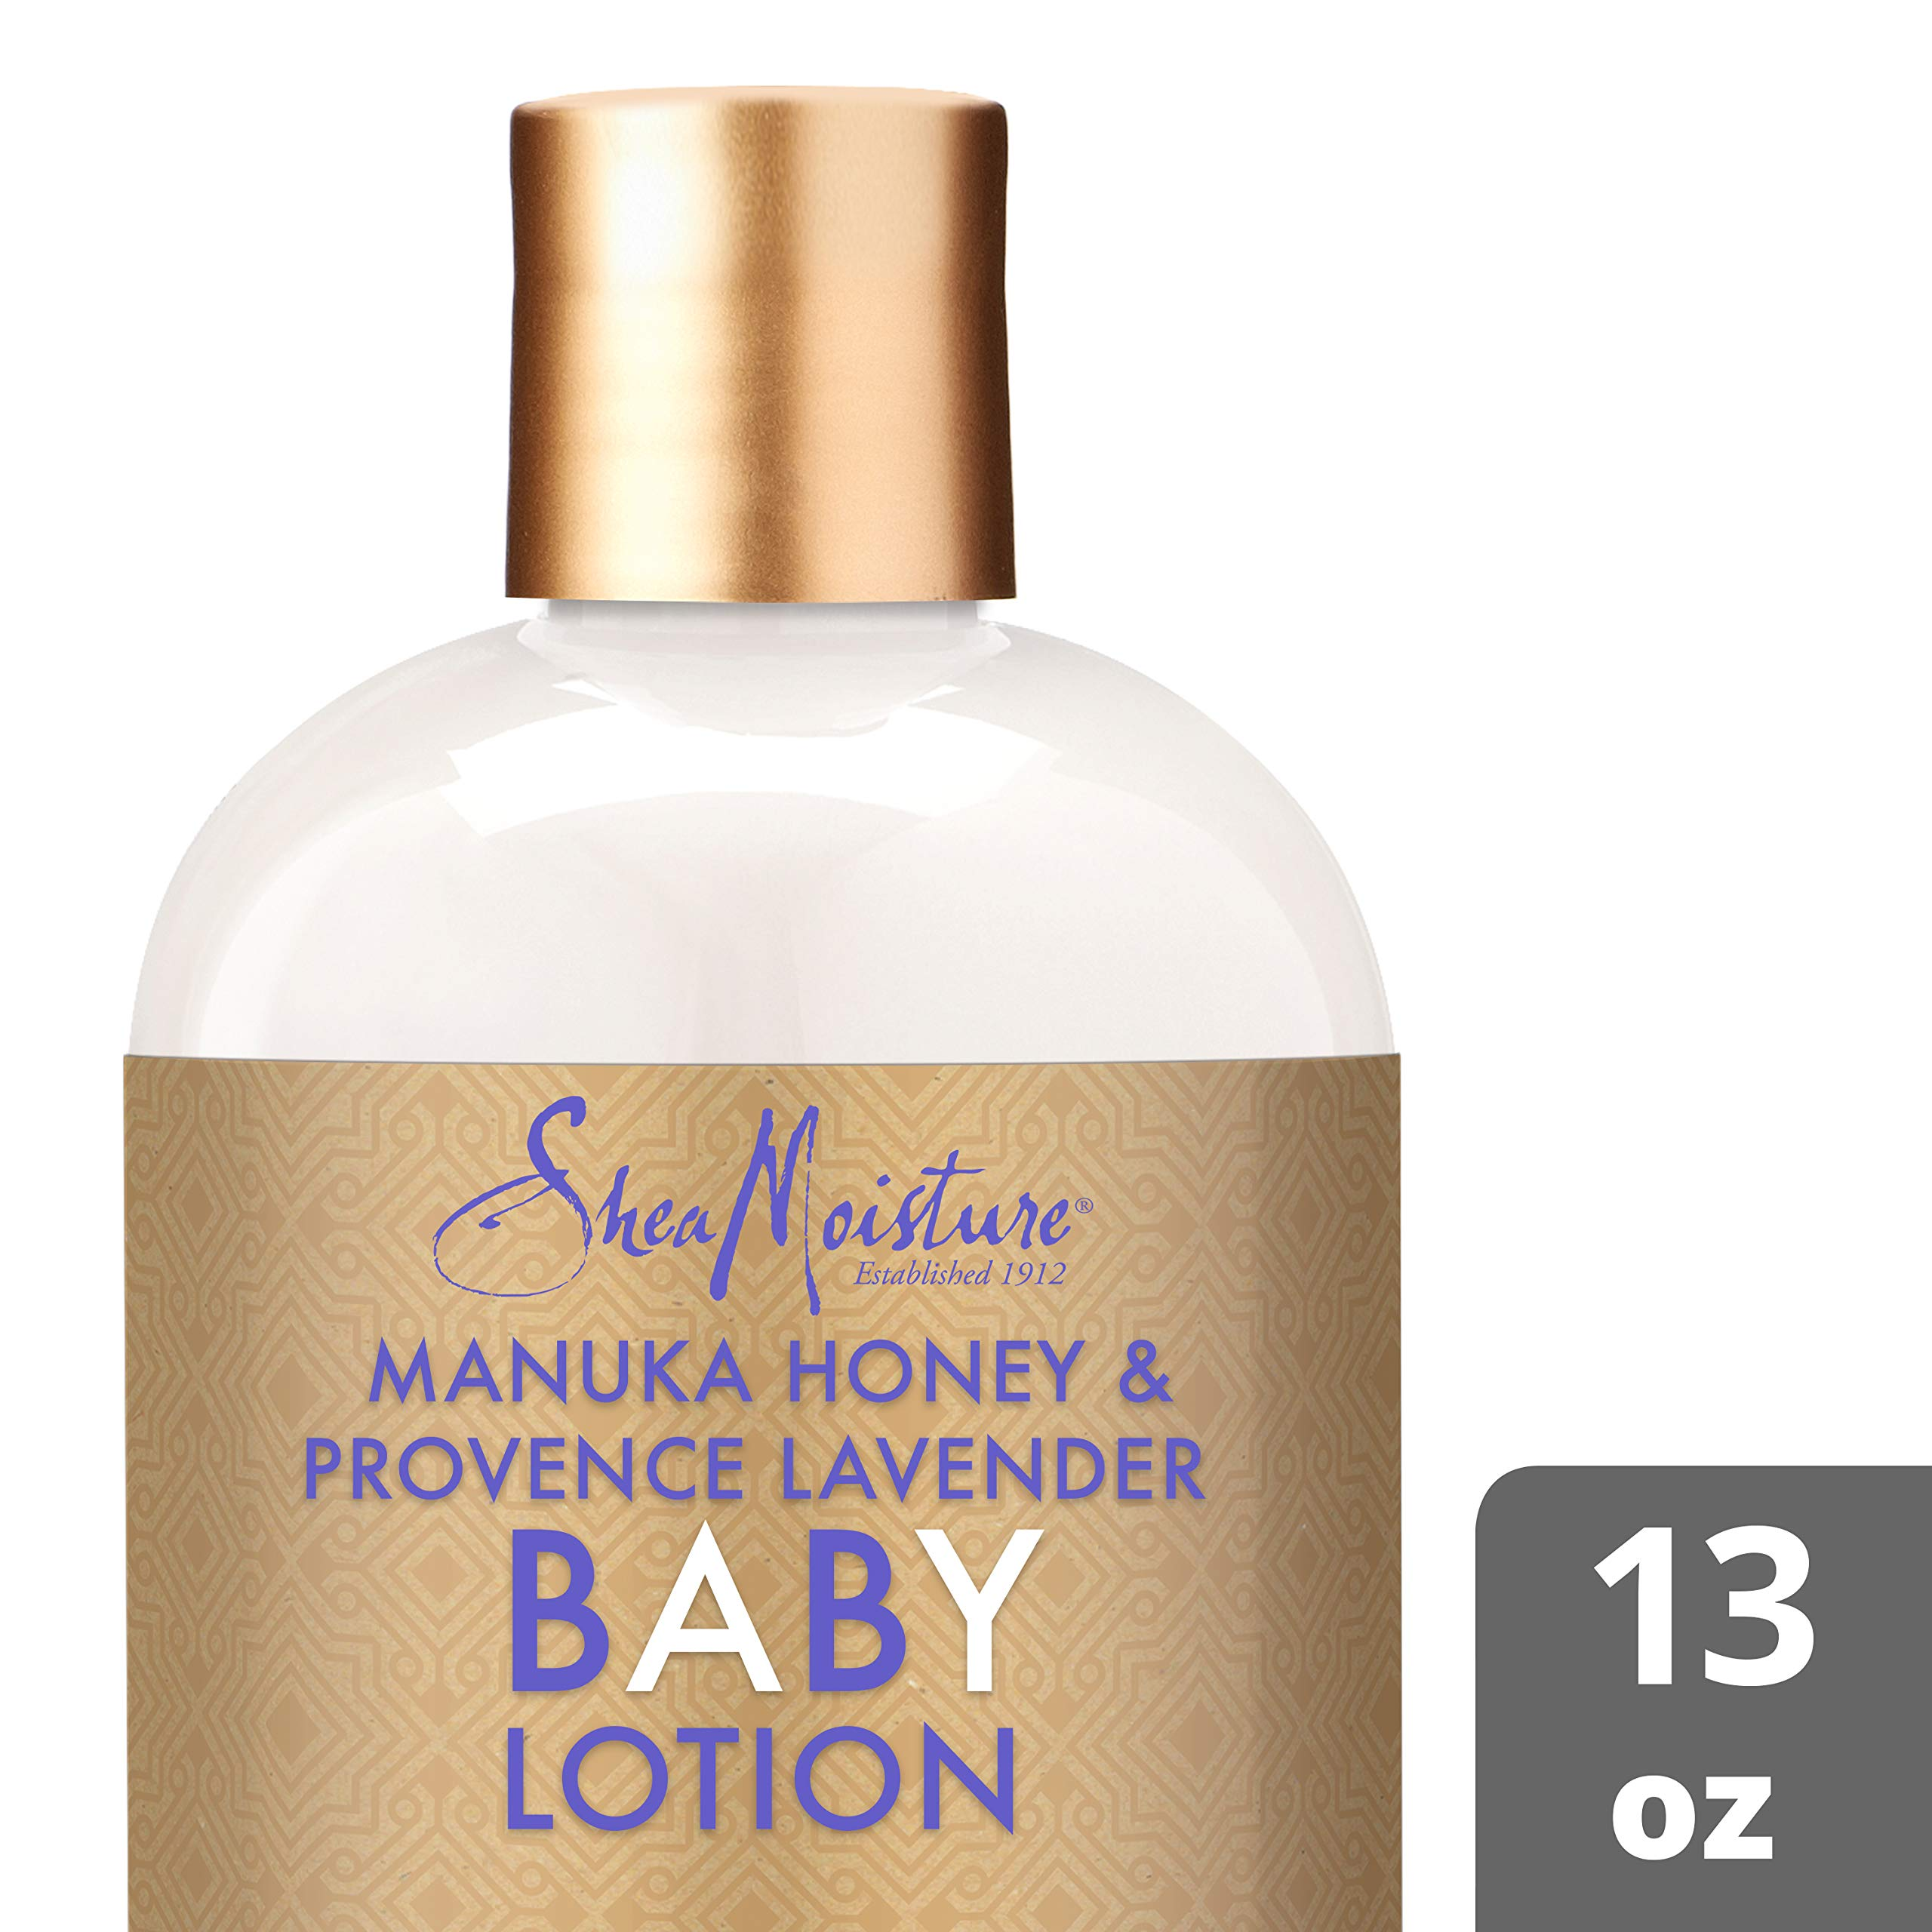 Shea Moisture Manuka Honey and Provence Lavender Baby Nighttime Soothing Lotion By Shea Moisture for Kids Body Lotion, 13 Ounce by Shea Moisture